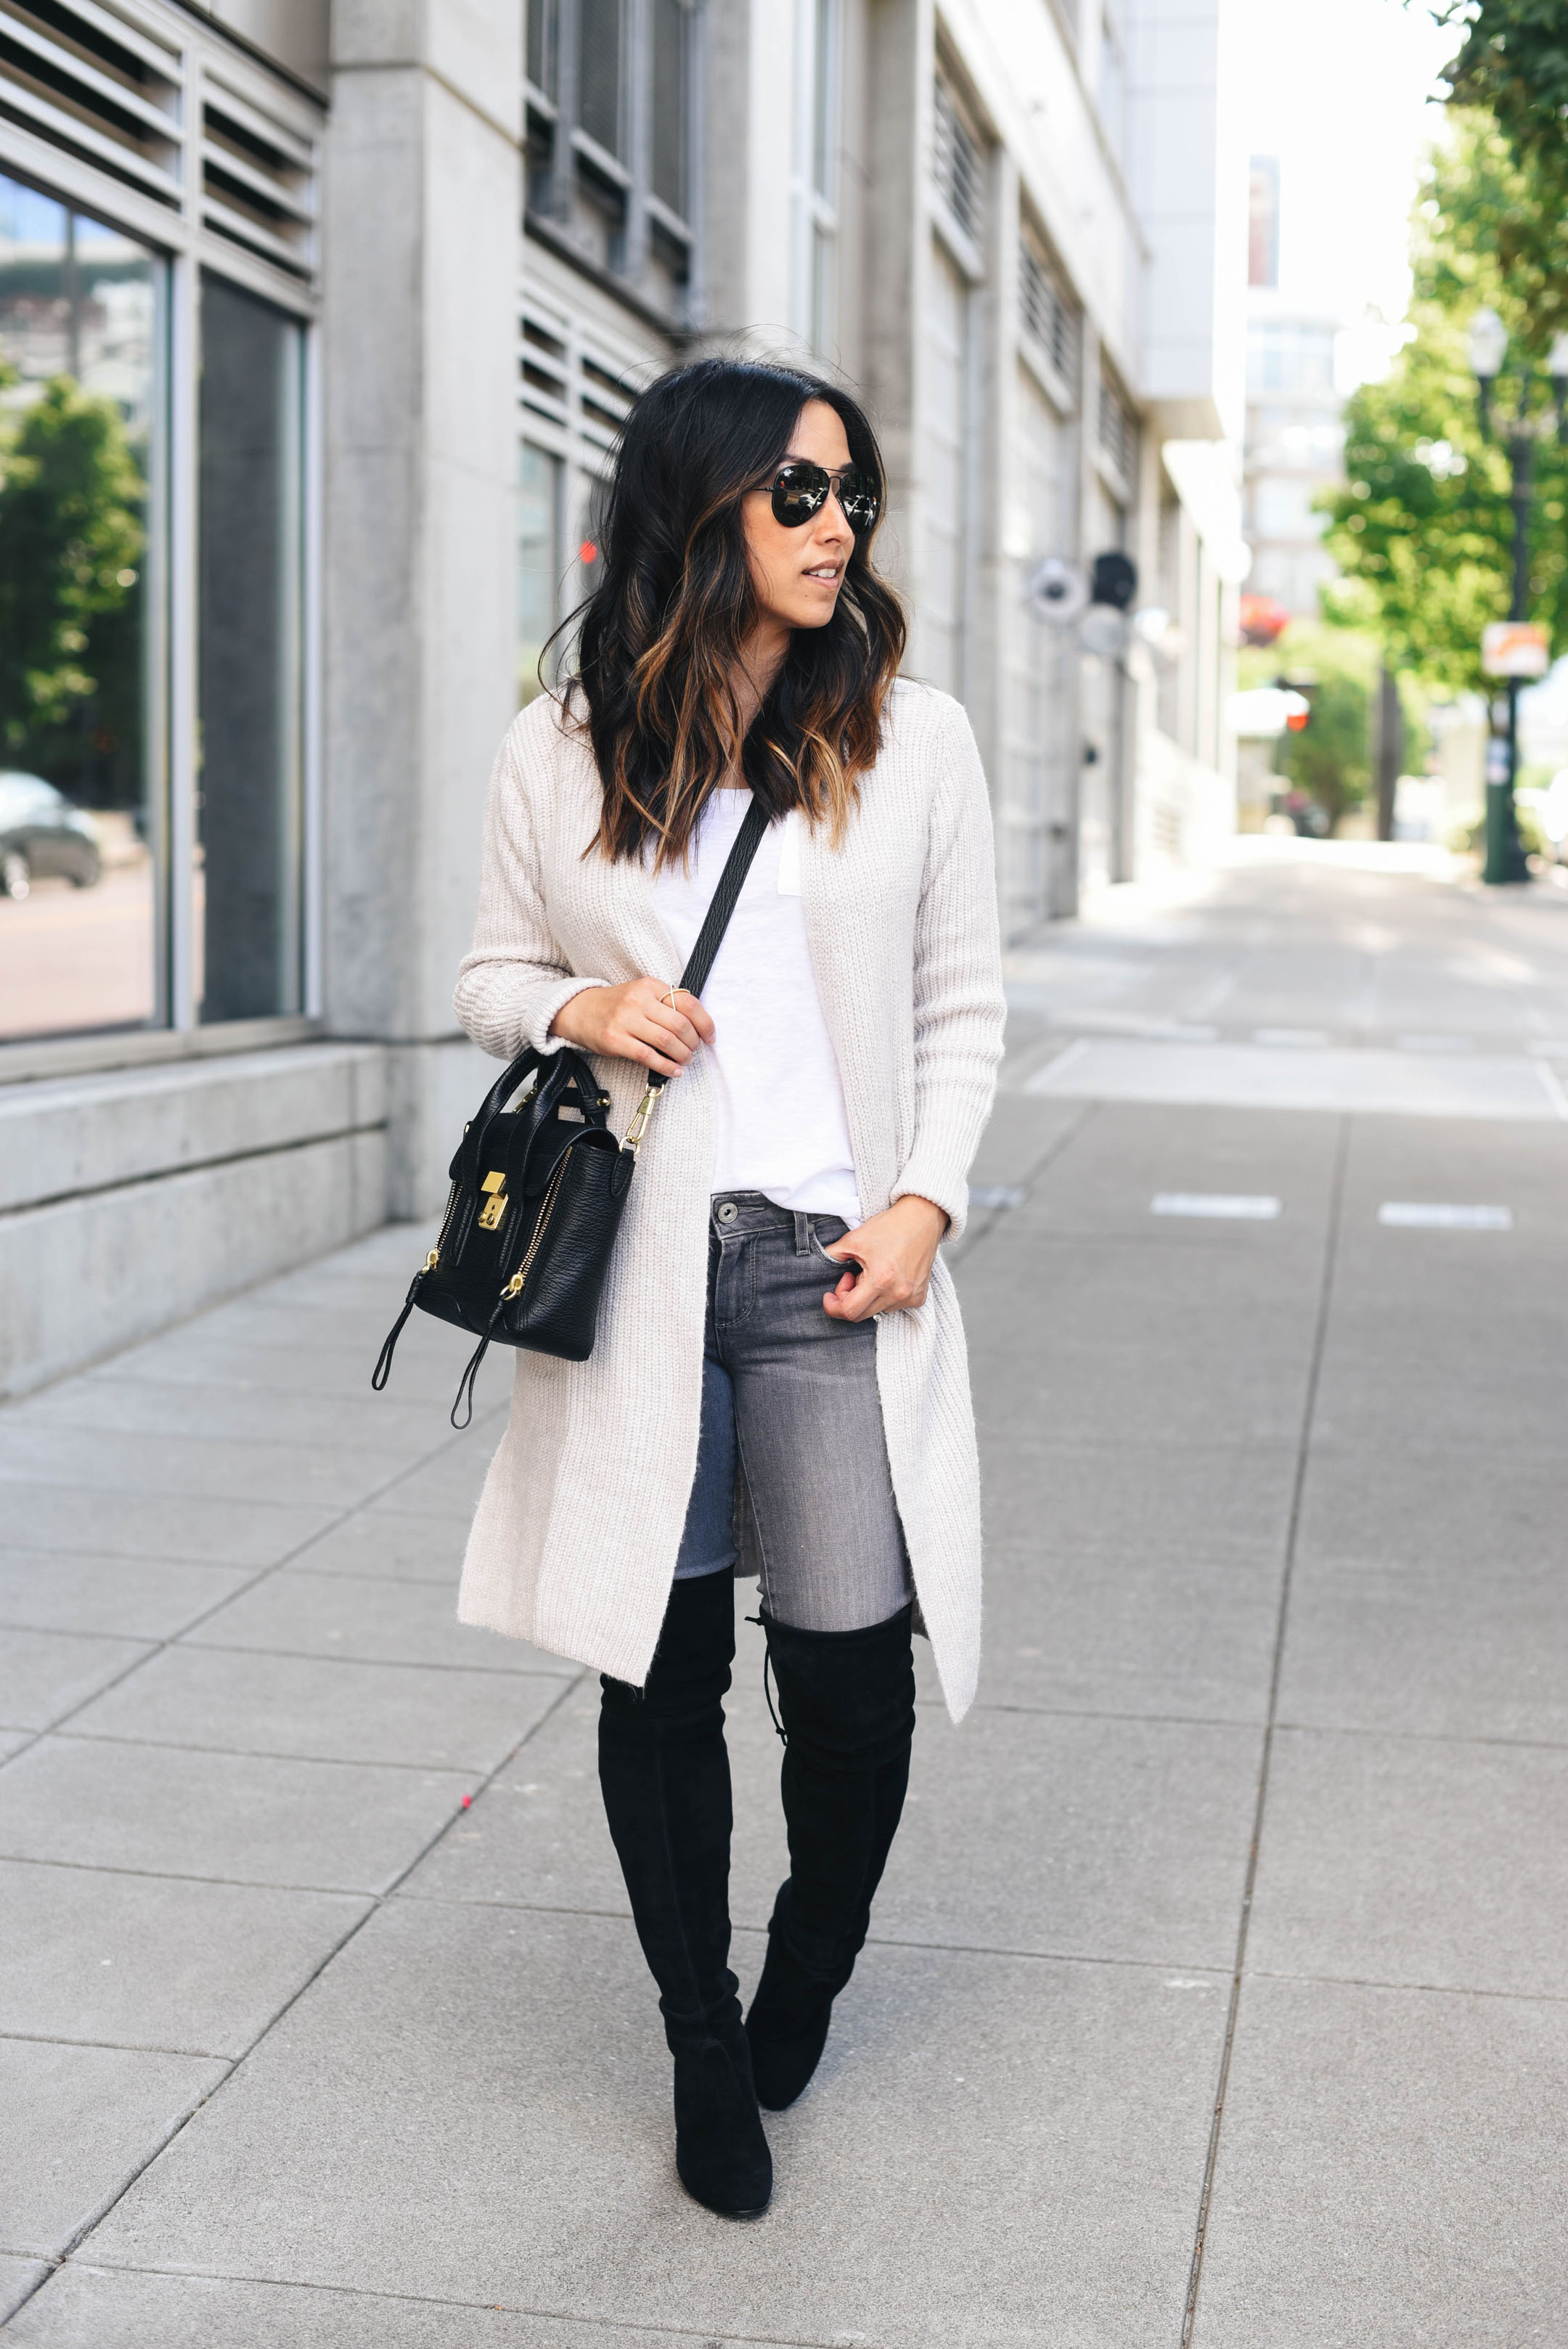 7a27d89e505 Your Guide to Buying and Styling Over The Knee Boots - Crystalin Marie